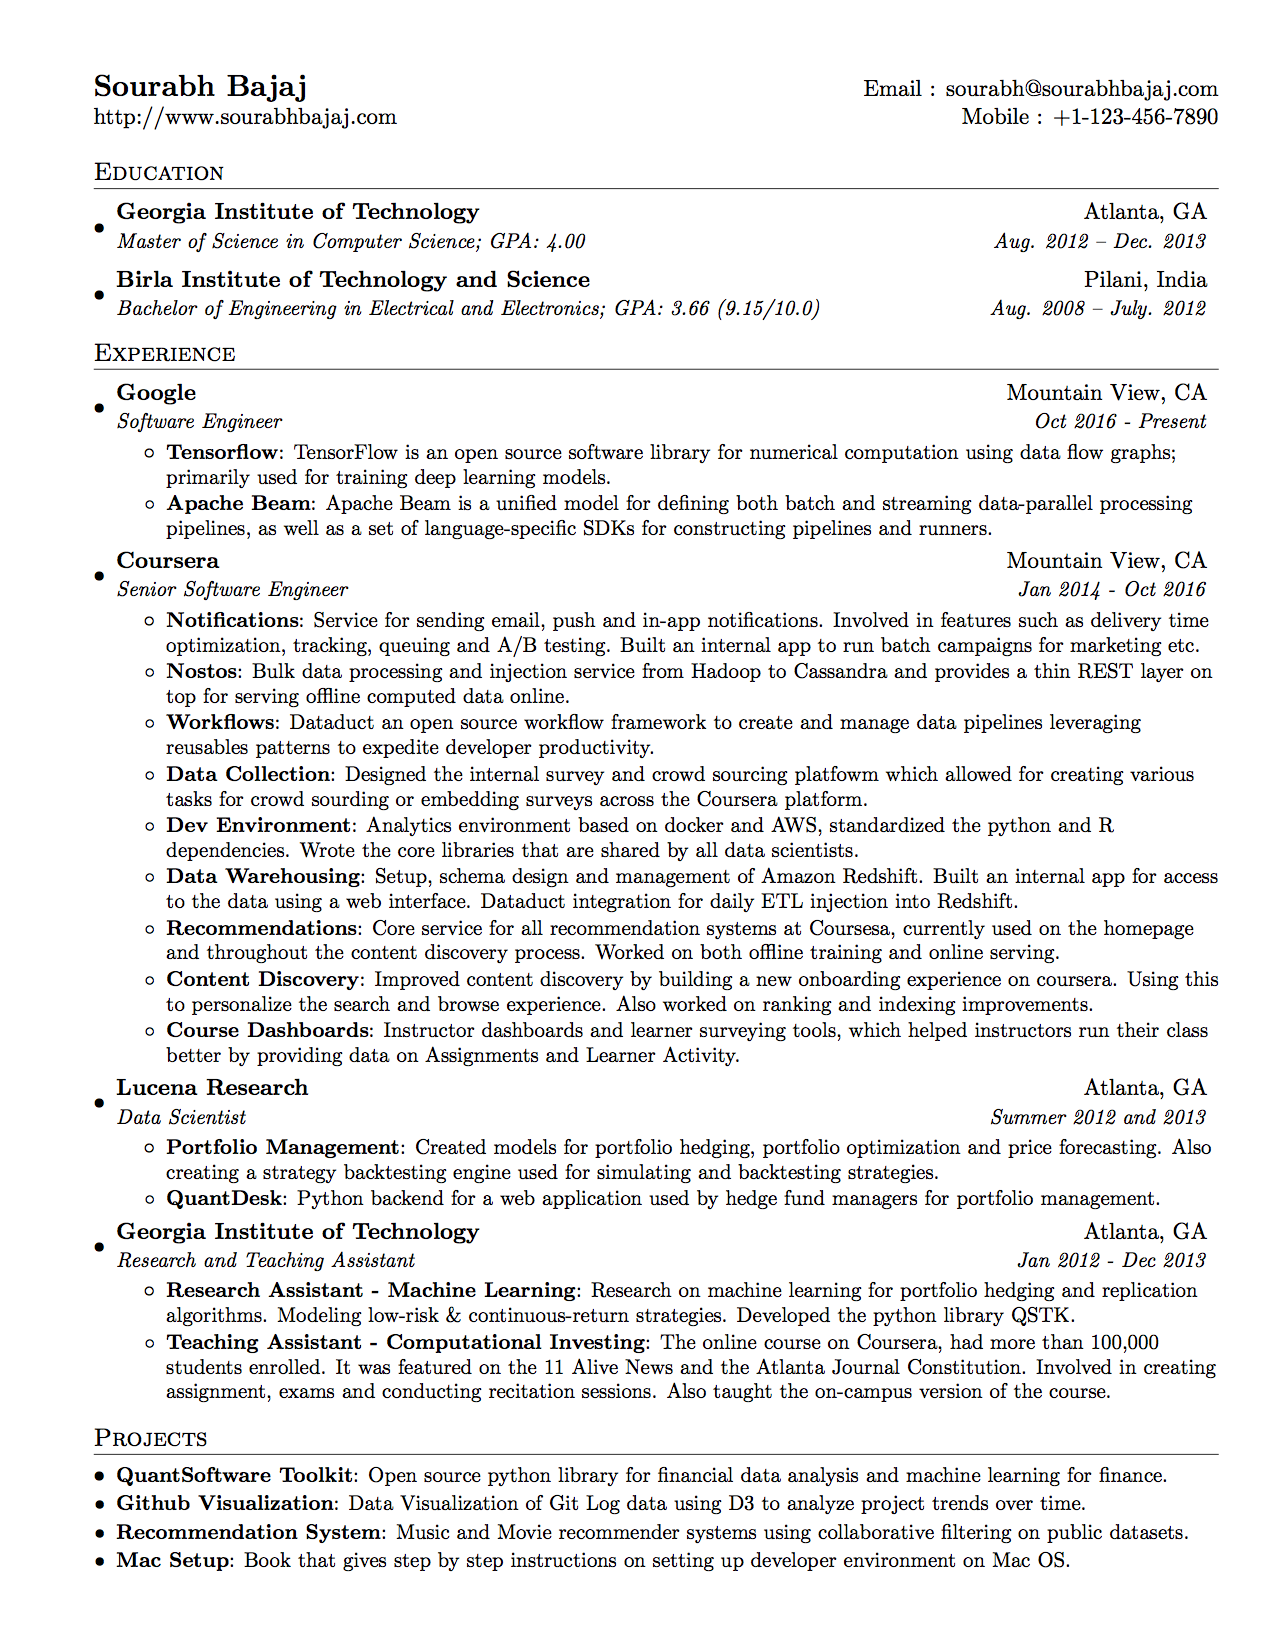 tips on building a data scientist u2019s resume  u2013 michael l  peng  u2013 medium